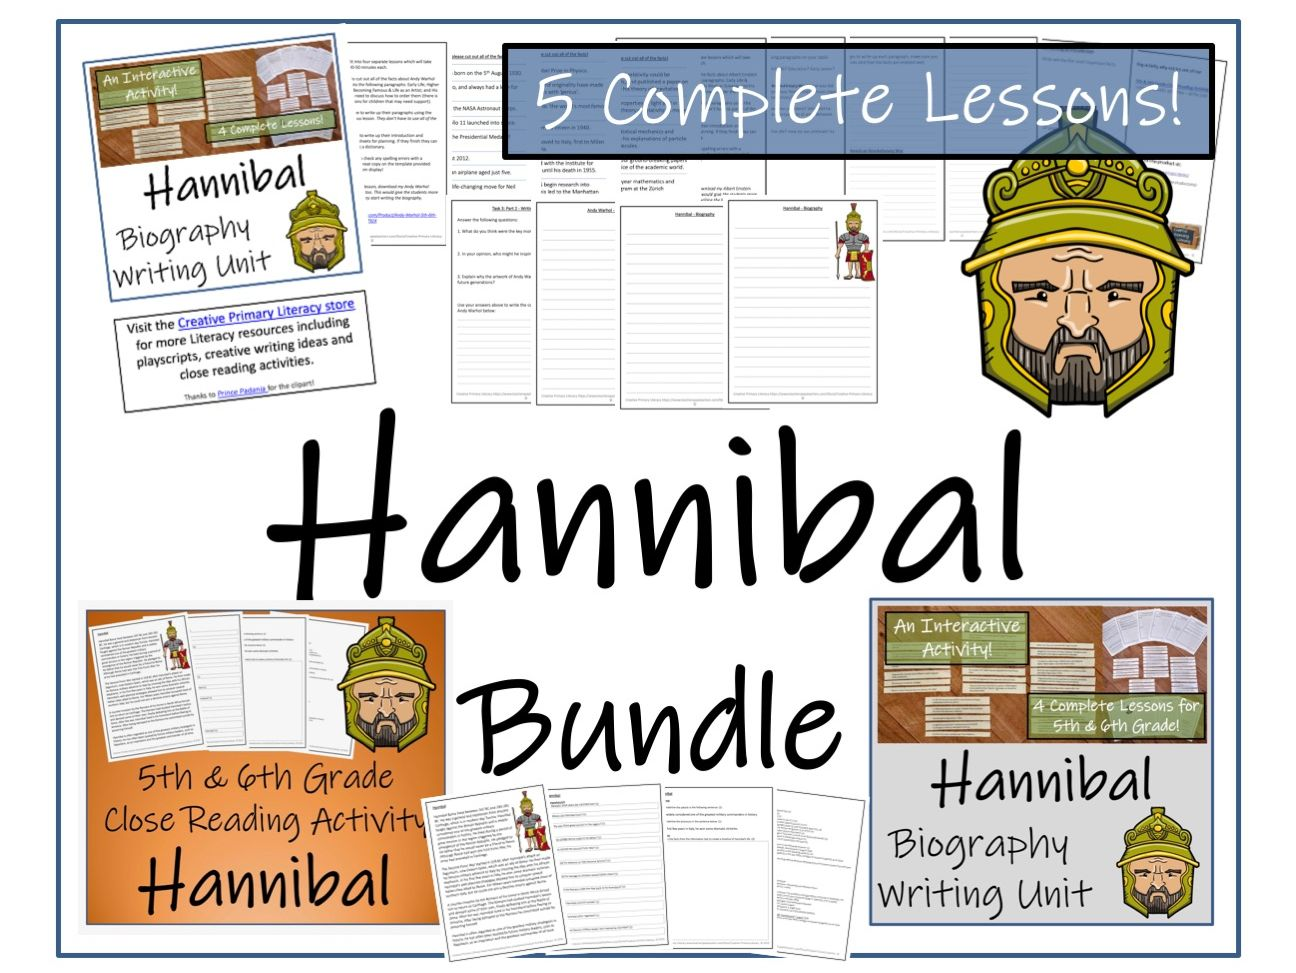 UKS2 History - Hannibal Reading Comprehension & Biography Bundle